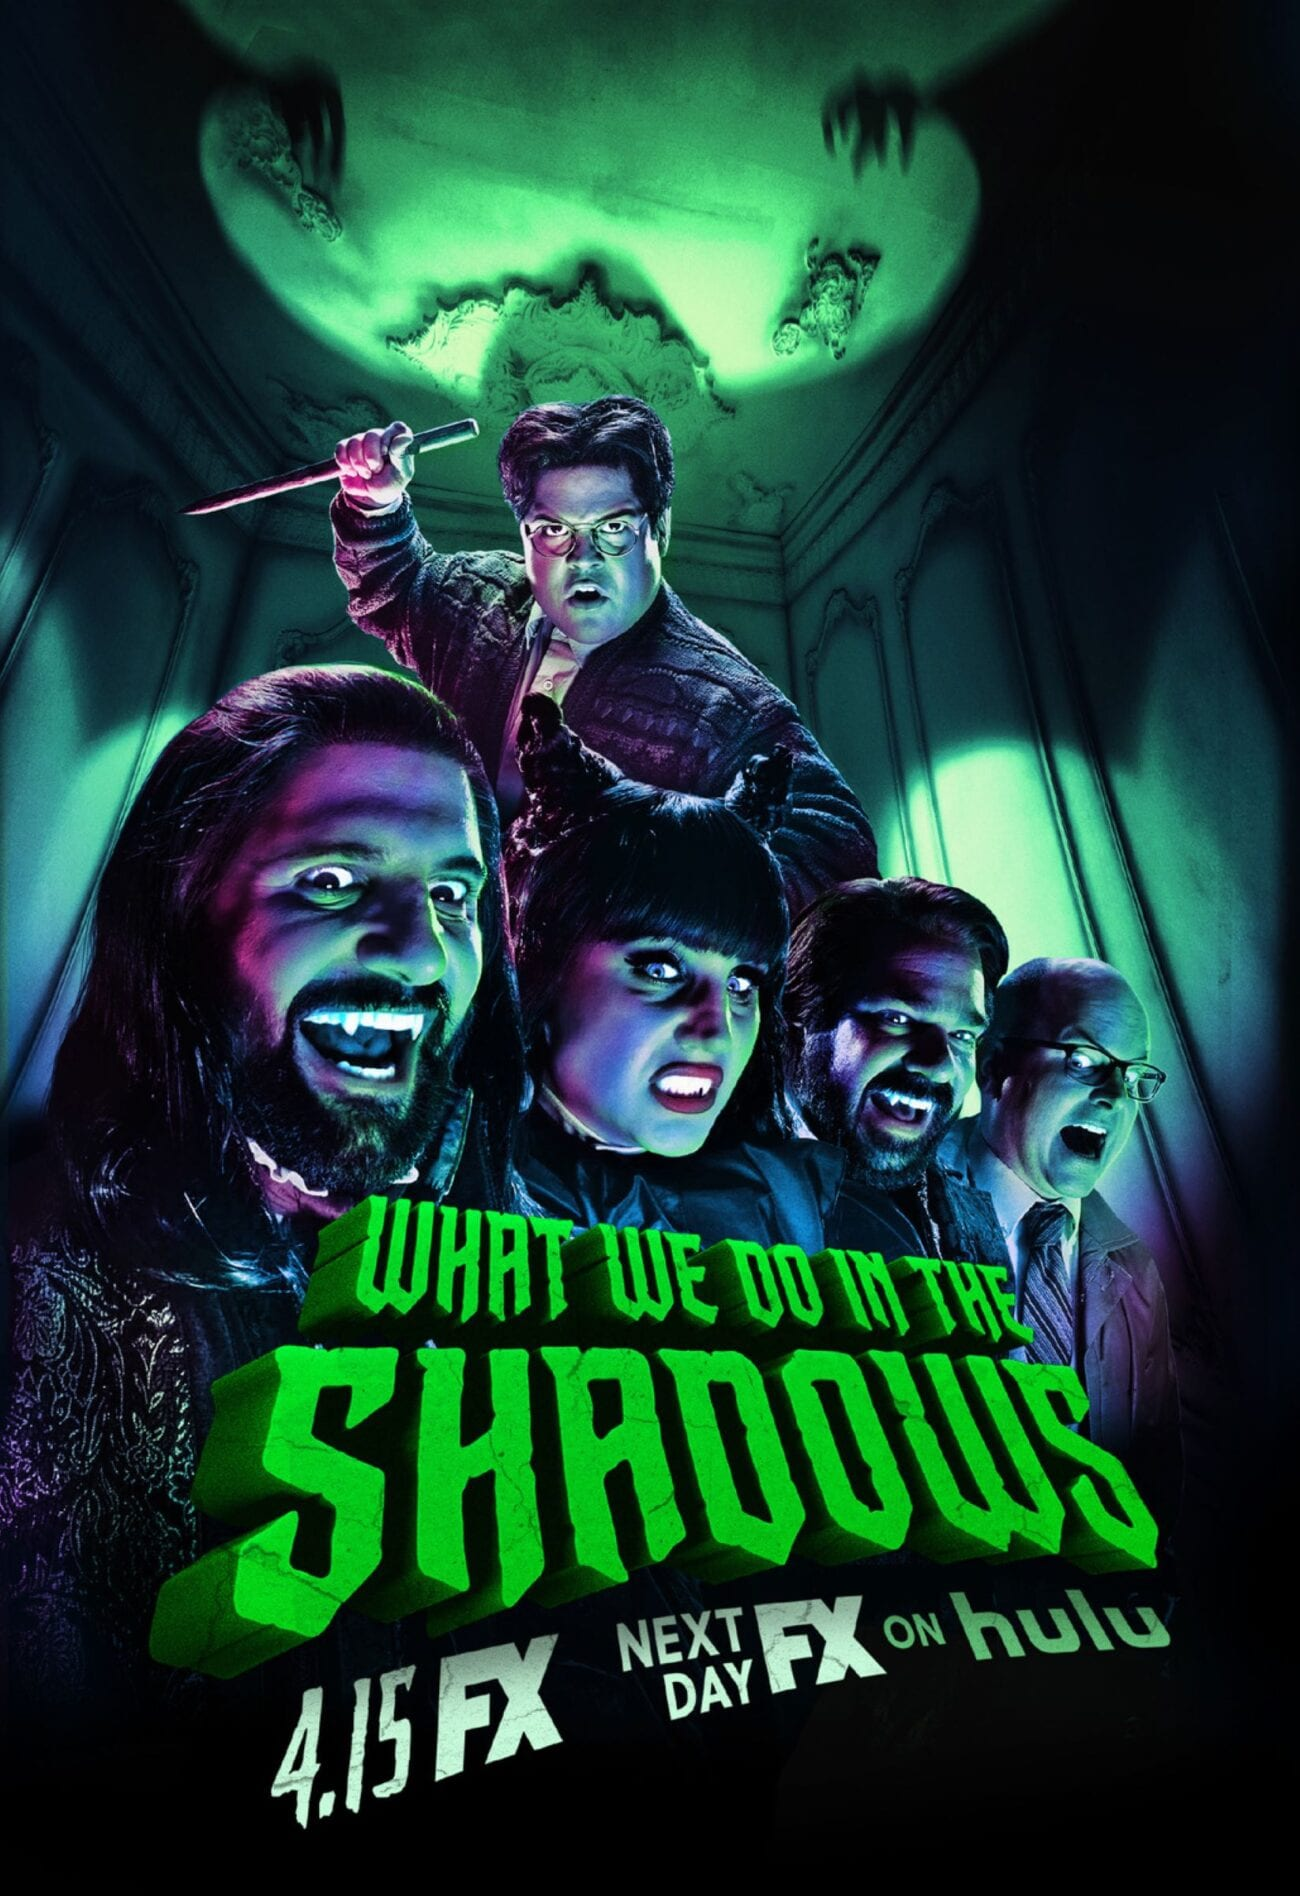 The vampire drama from Taiki Watiti has been transformed into a black comedy for the ages. You need to be watching 'What we do in the Shadows' on FX.